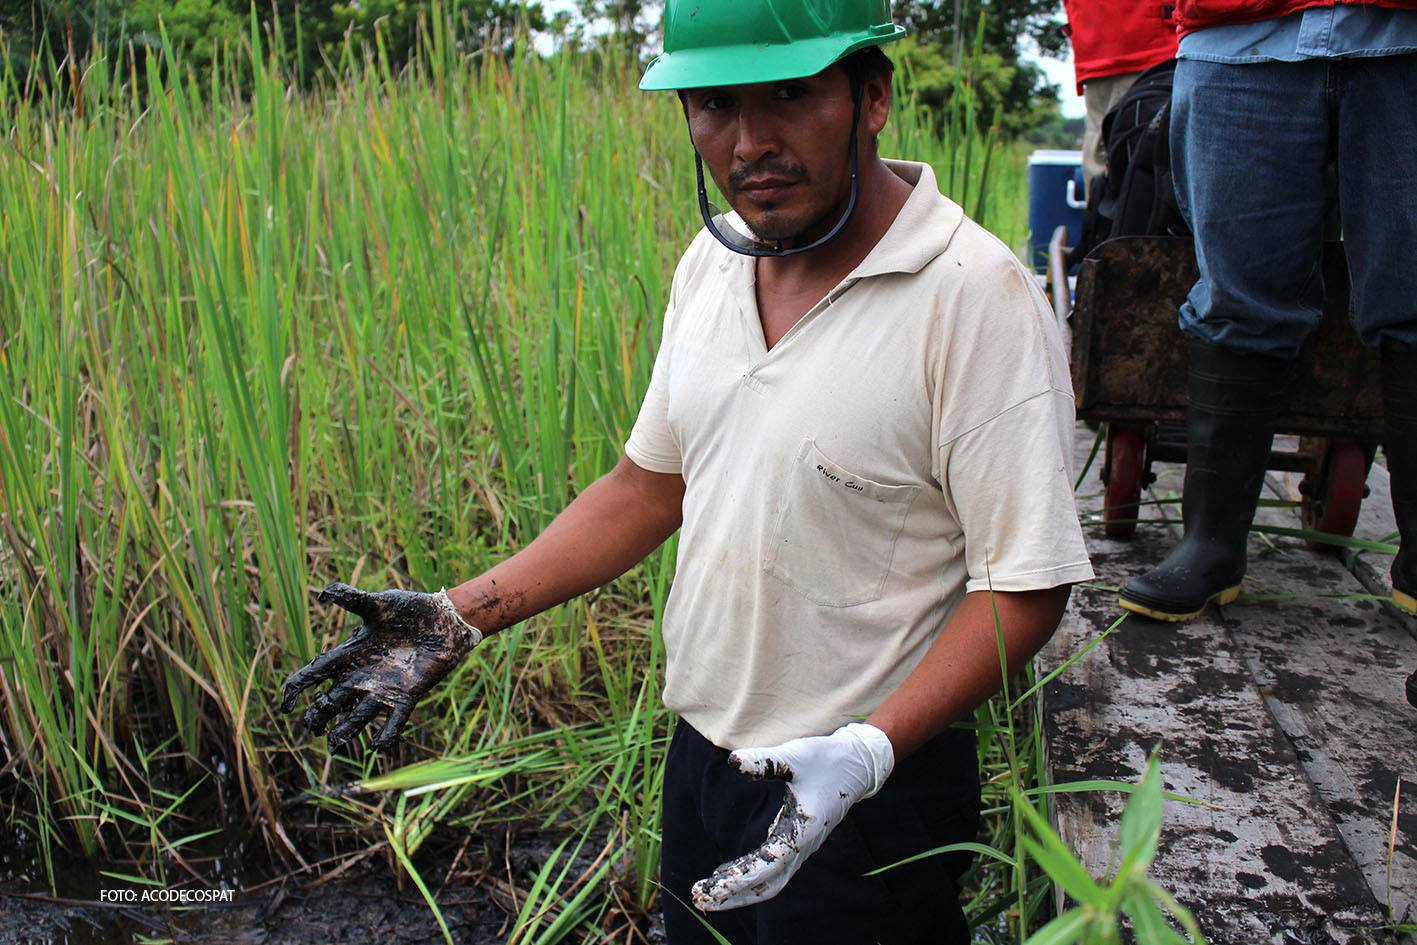 Ander Ordoñez, a monitor with the Peruvian Assessment and Environmental Control Agency, examines the impact of oil spills inside the Marañon river basin in 2013.